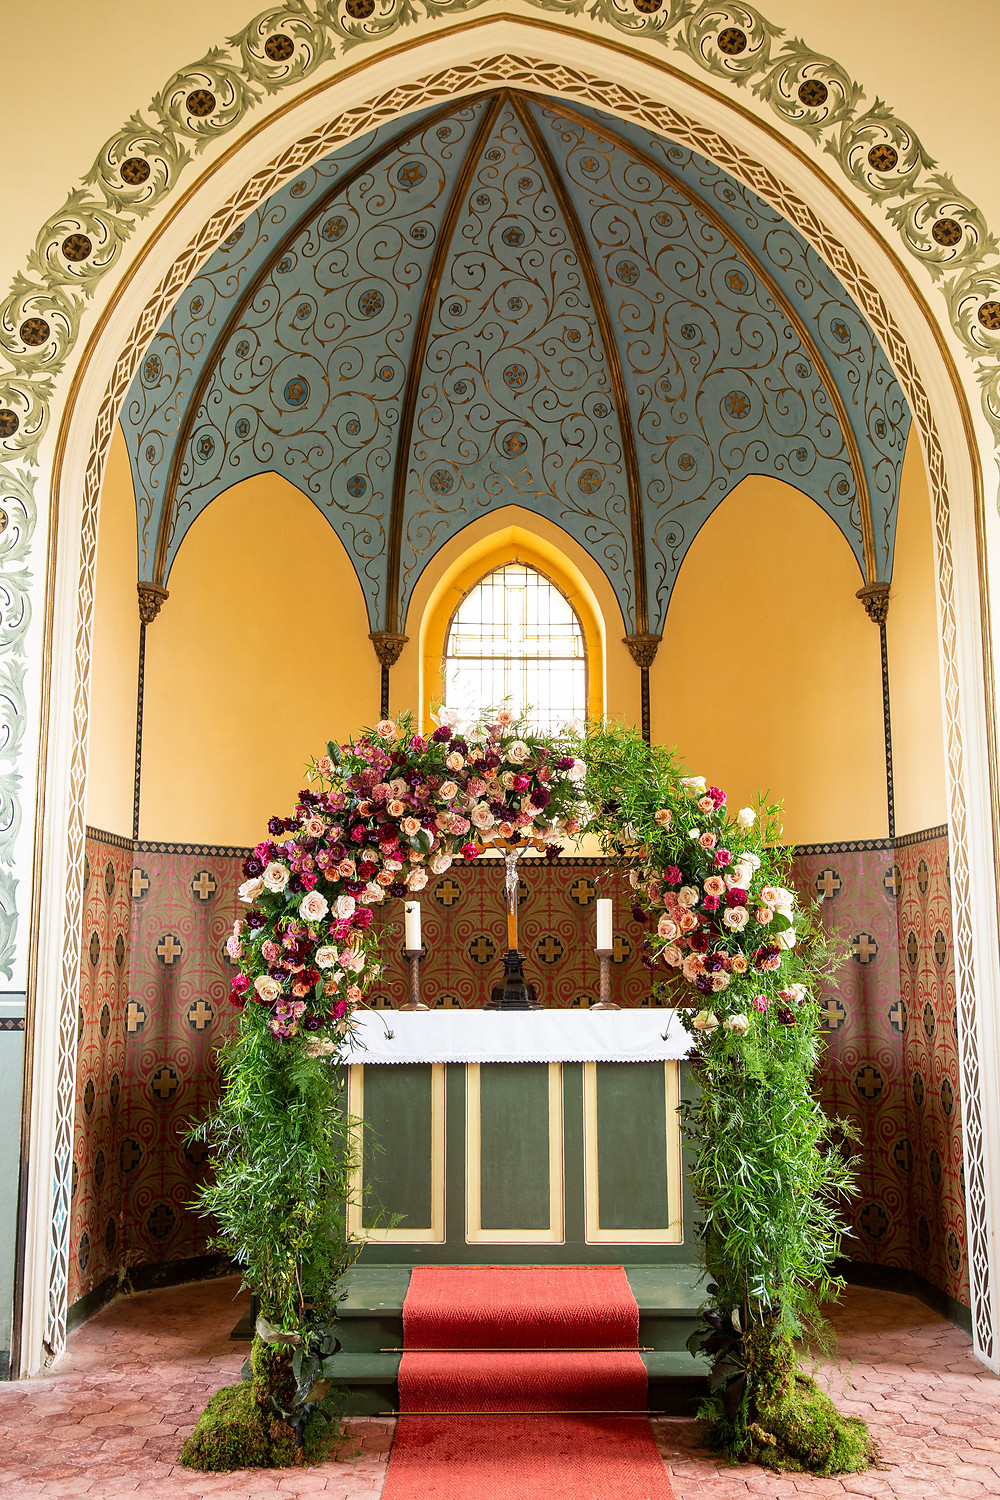 Floral arch using jewel tone flowers like roses, carnations and hellebores